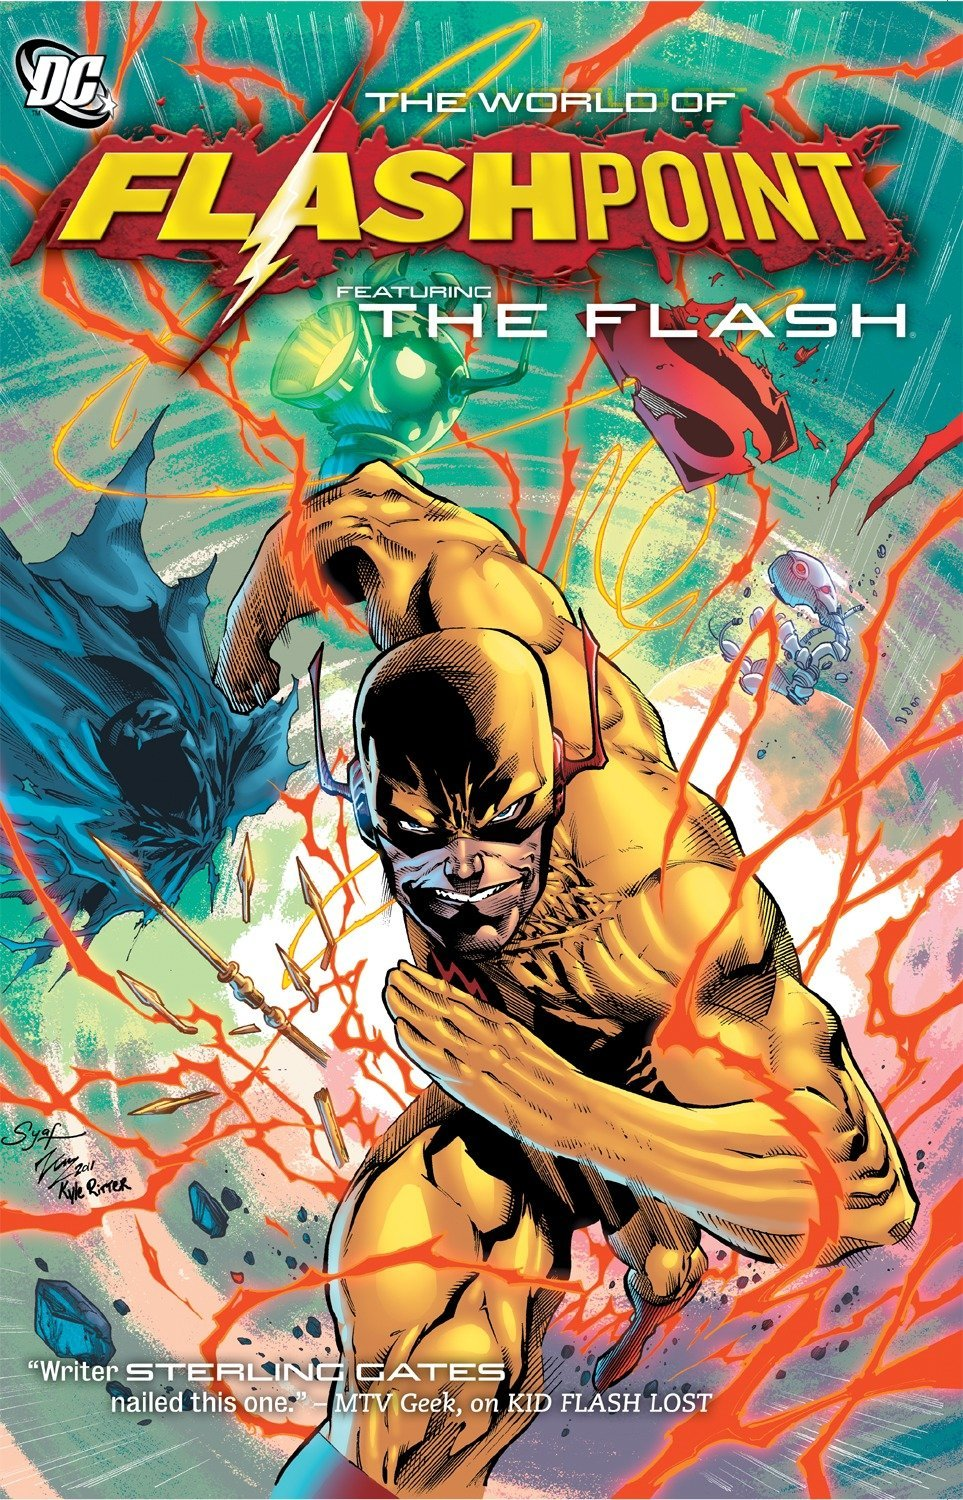 Amazon com: Flashpoint: The World of Flashpoint Featuring The Flash